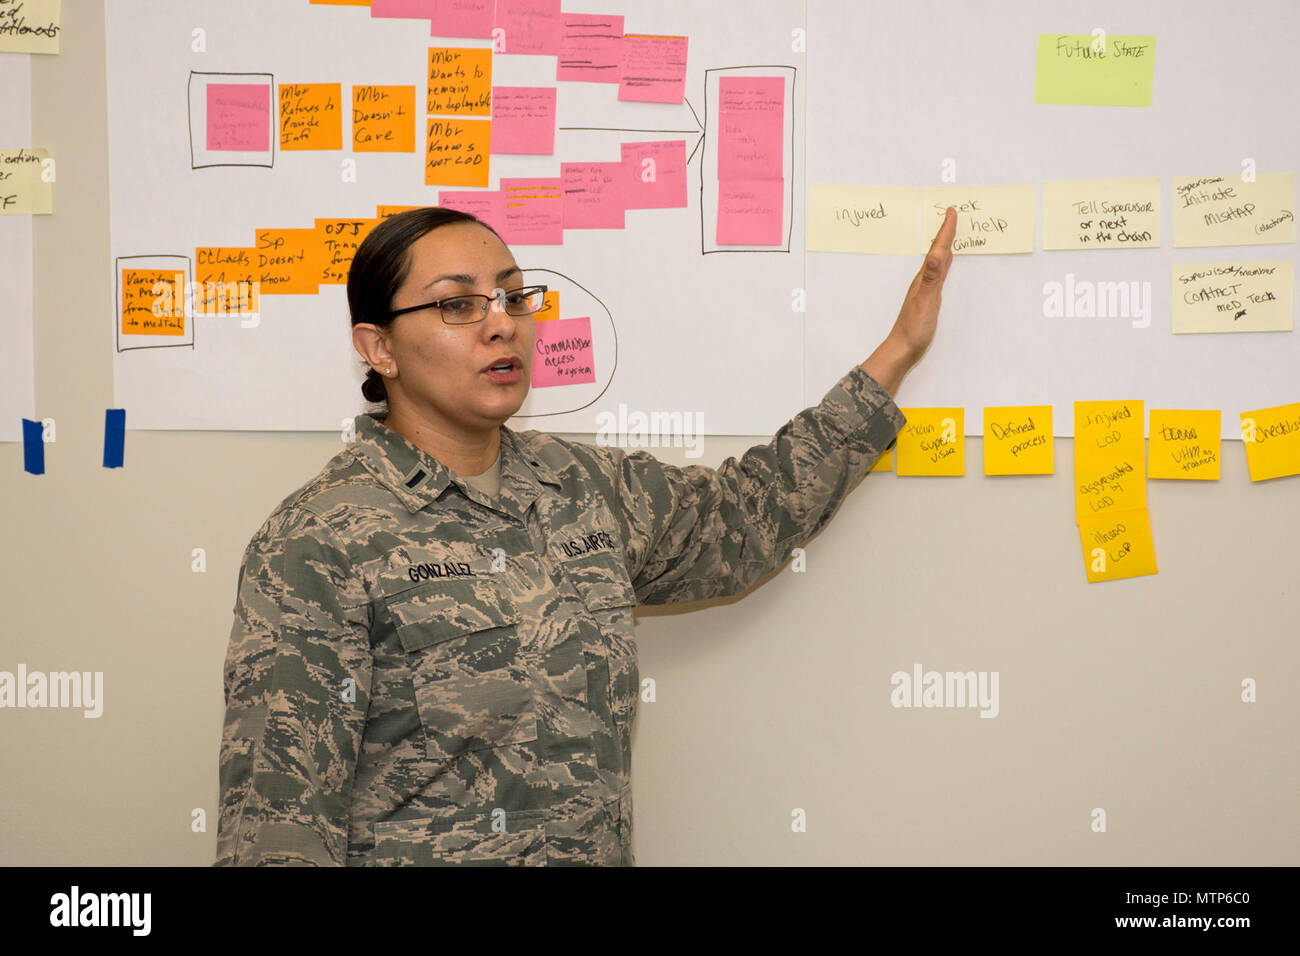 U.S. Air Force Reserve 1st Lt. Jamillah Gonzalez, process manager, 913th Airlift Group, speaks at the Line of Duty (LOD) Determination Continuous Process Improvement Event at Little Rock Air Force Base, Ark., Jan. 25, 2017. Continuous Process Improvement helps organizations by identifying inefficient or ineffective gaps within a current process while also looking at ways optimize positive performance within a system. The 913th Aerospace Medical Squadron is making efforts to better assist the Group's Airmen when dealing with LOD determinations. (U.S. Air Force photo by Master Sgt. Jeff Walston/ - Stock Image